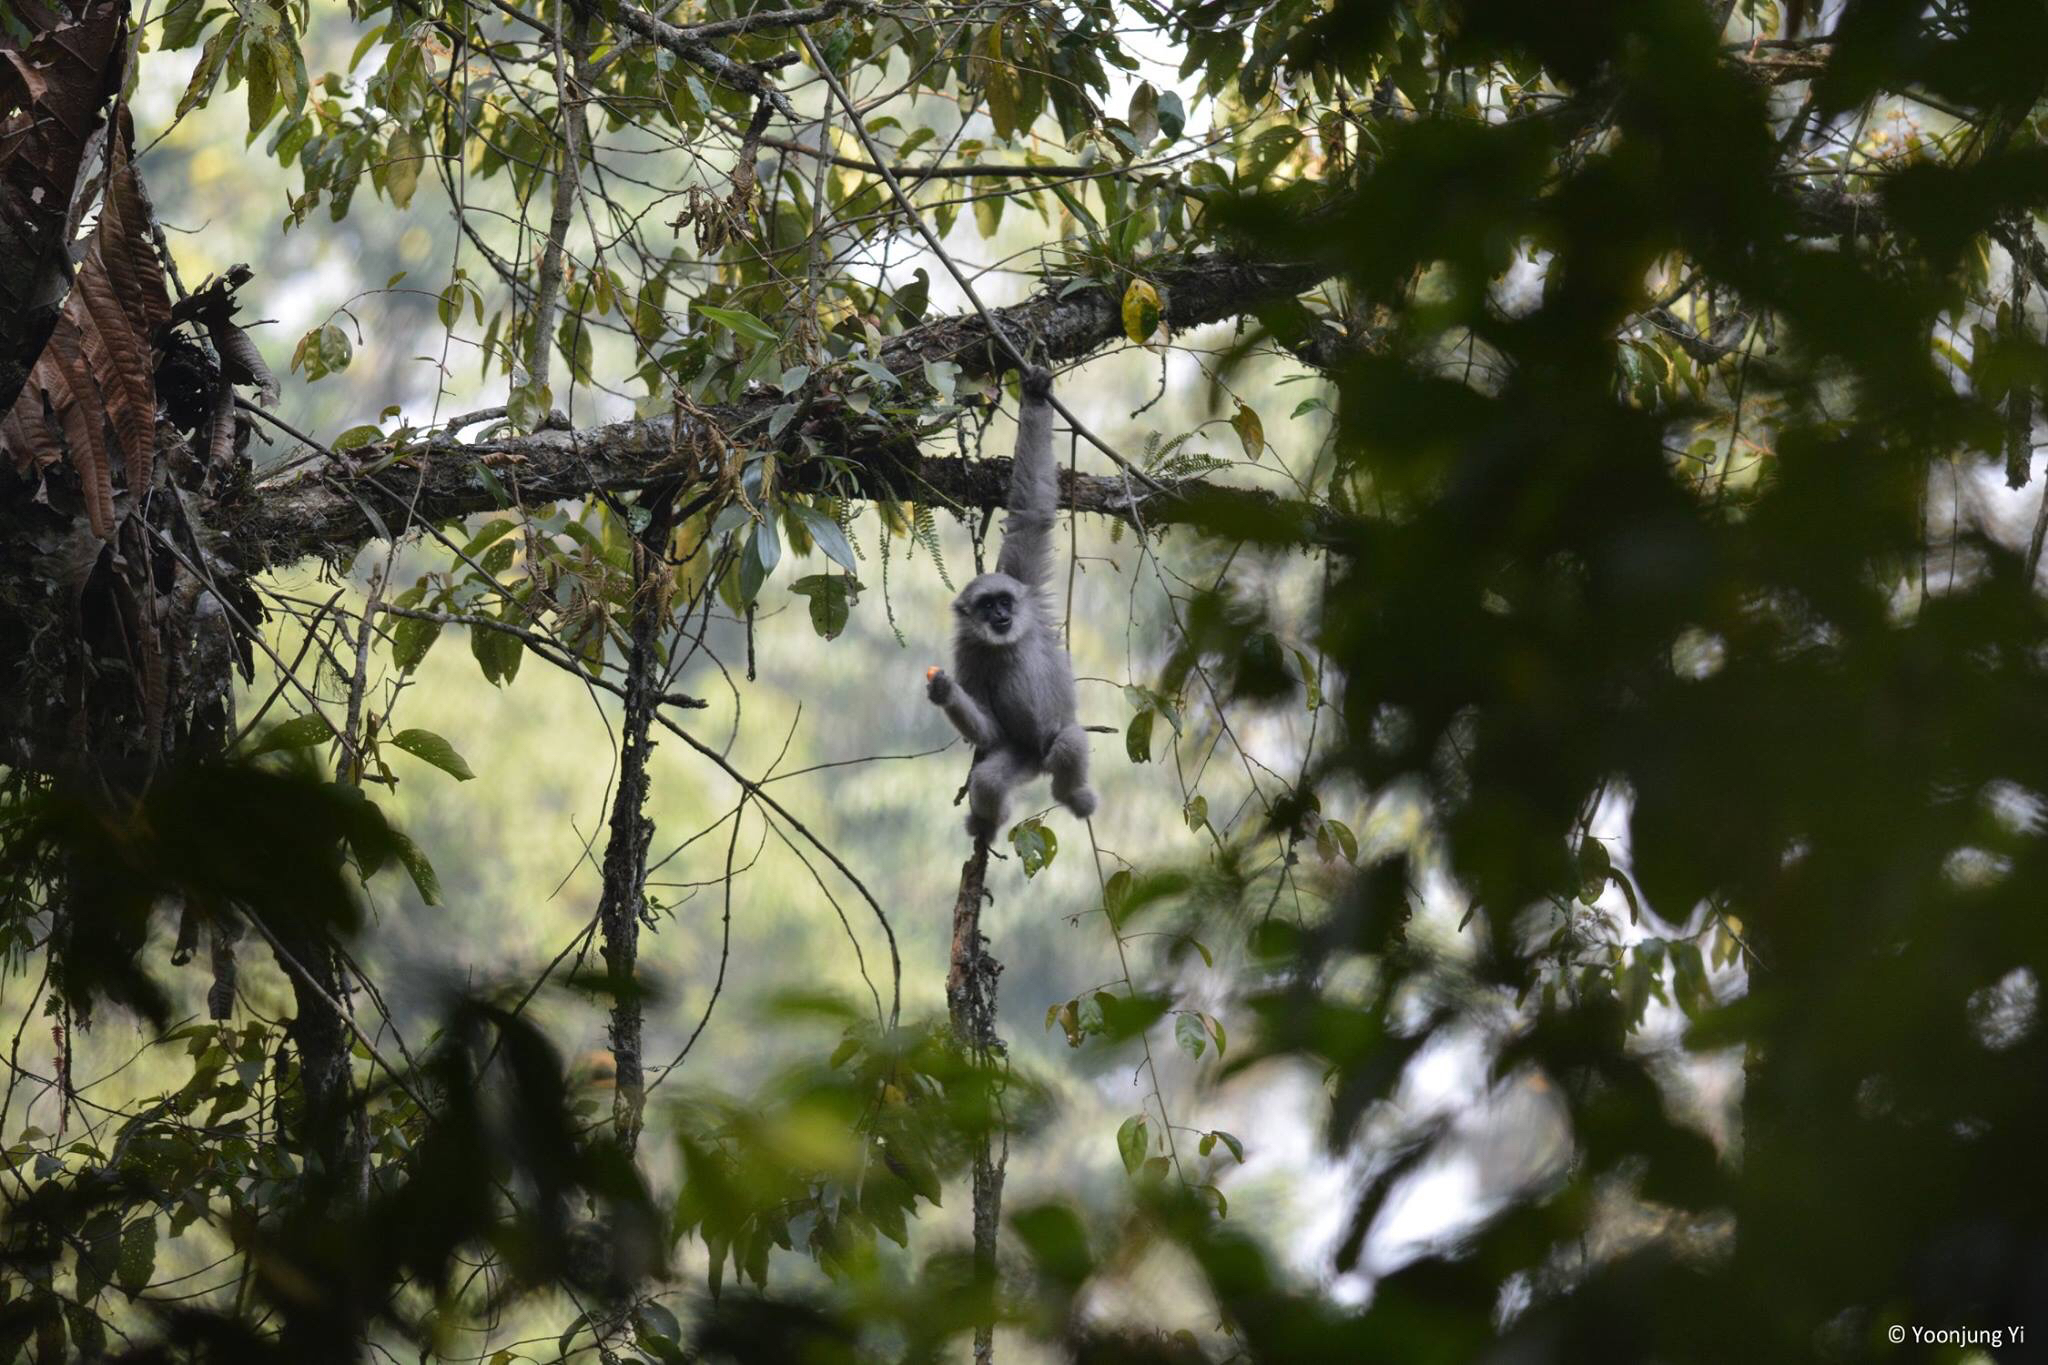 Image of silvery gibbon